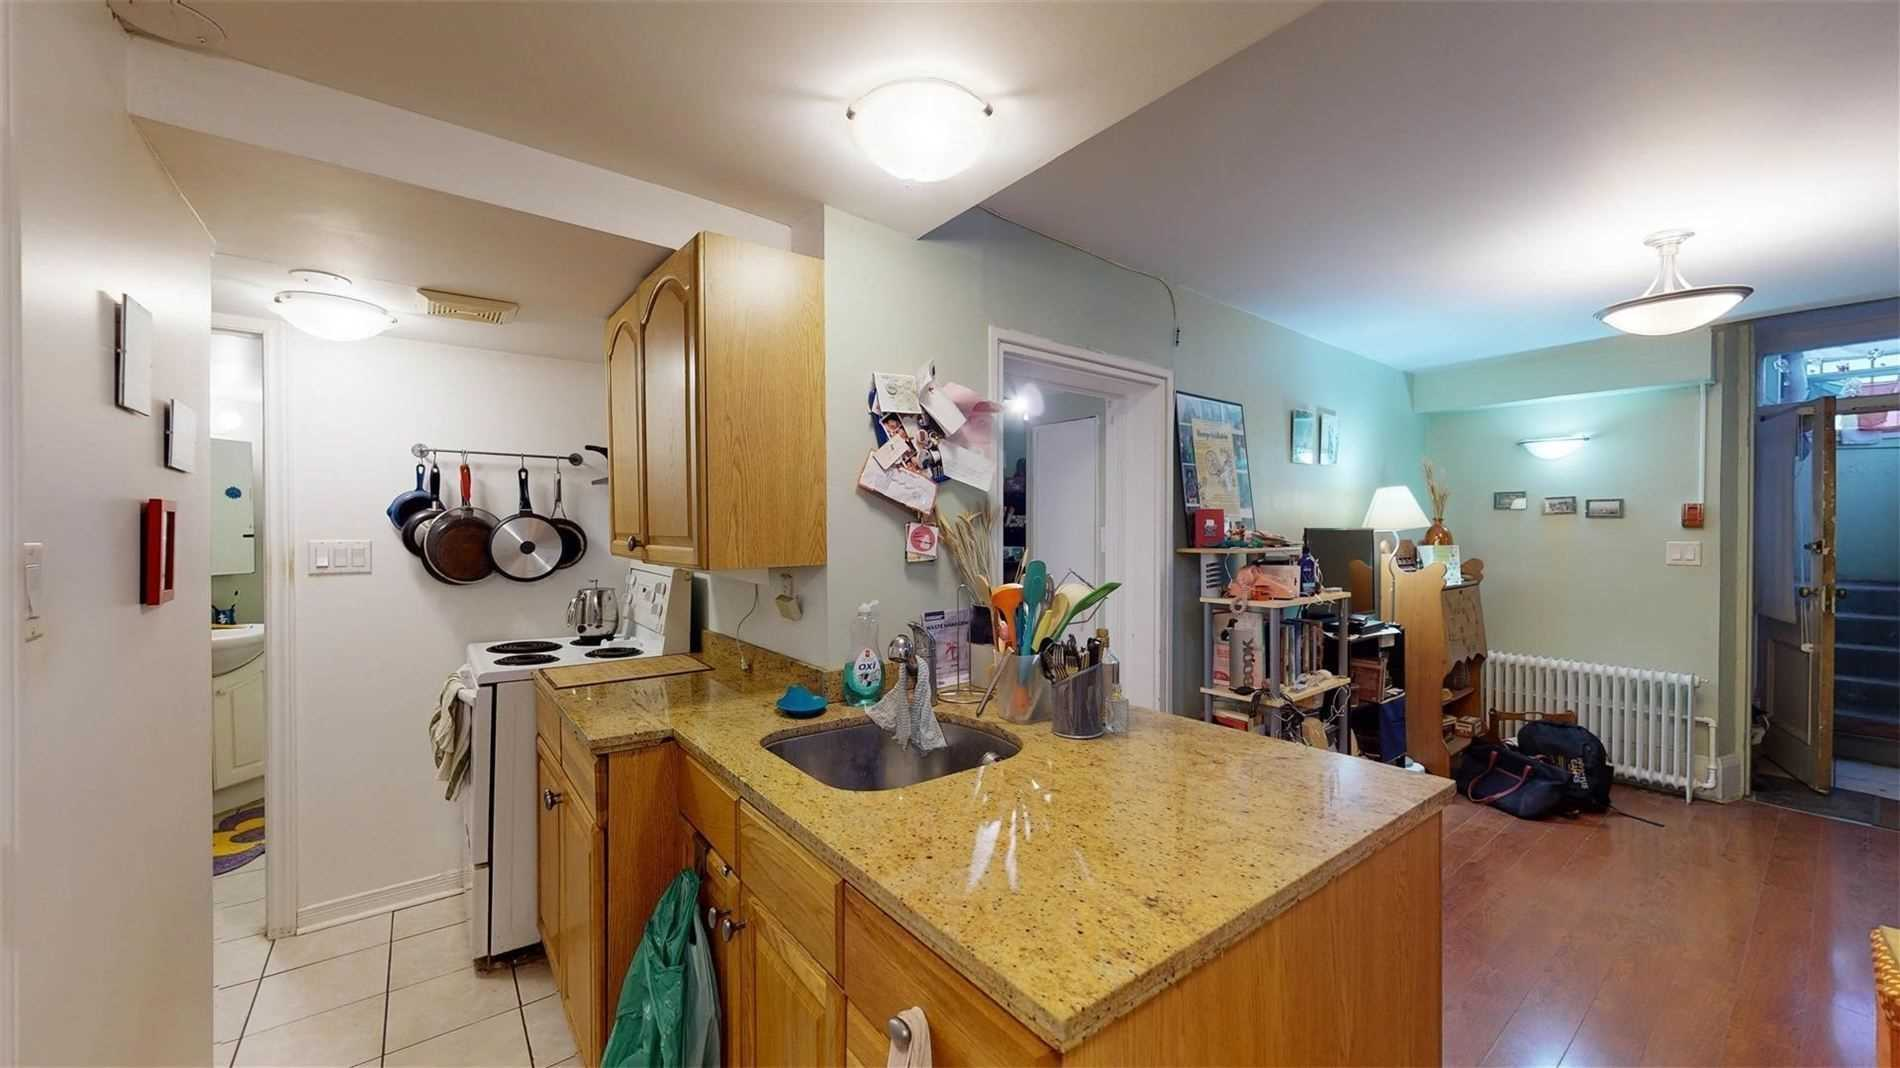 559 Broadview Ave, Toronto, Ontario M4K2N7, ,6 BathroomsBathrooms,Investment,For Sale,Broadview,E4856435